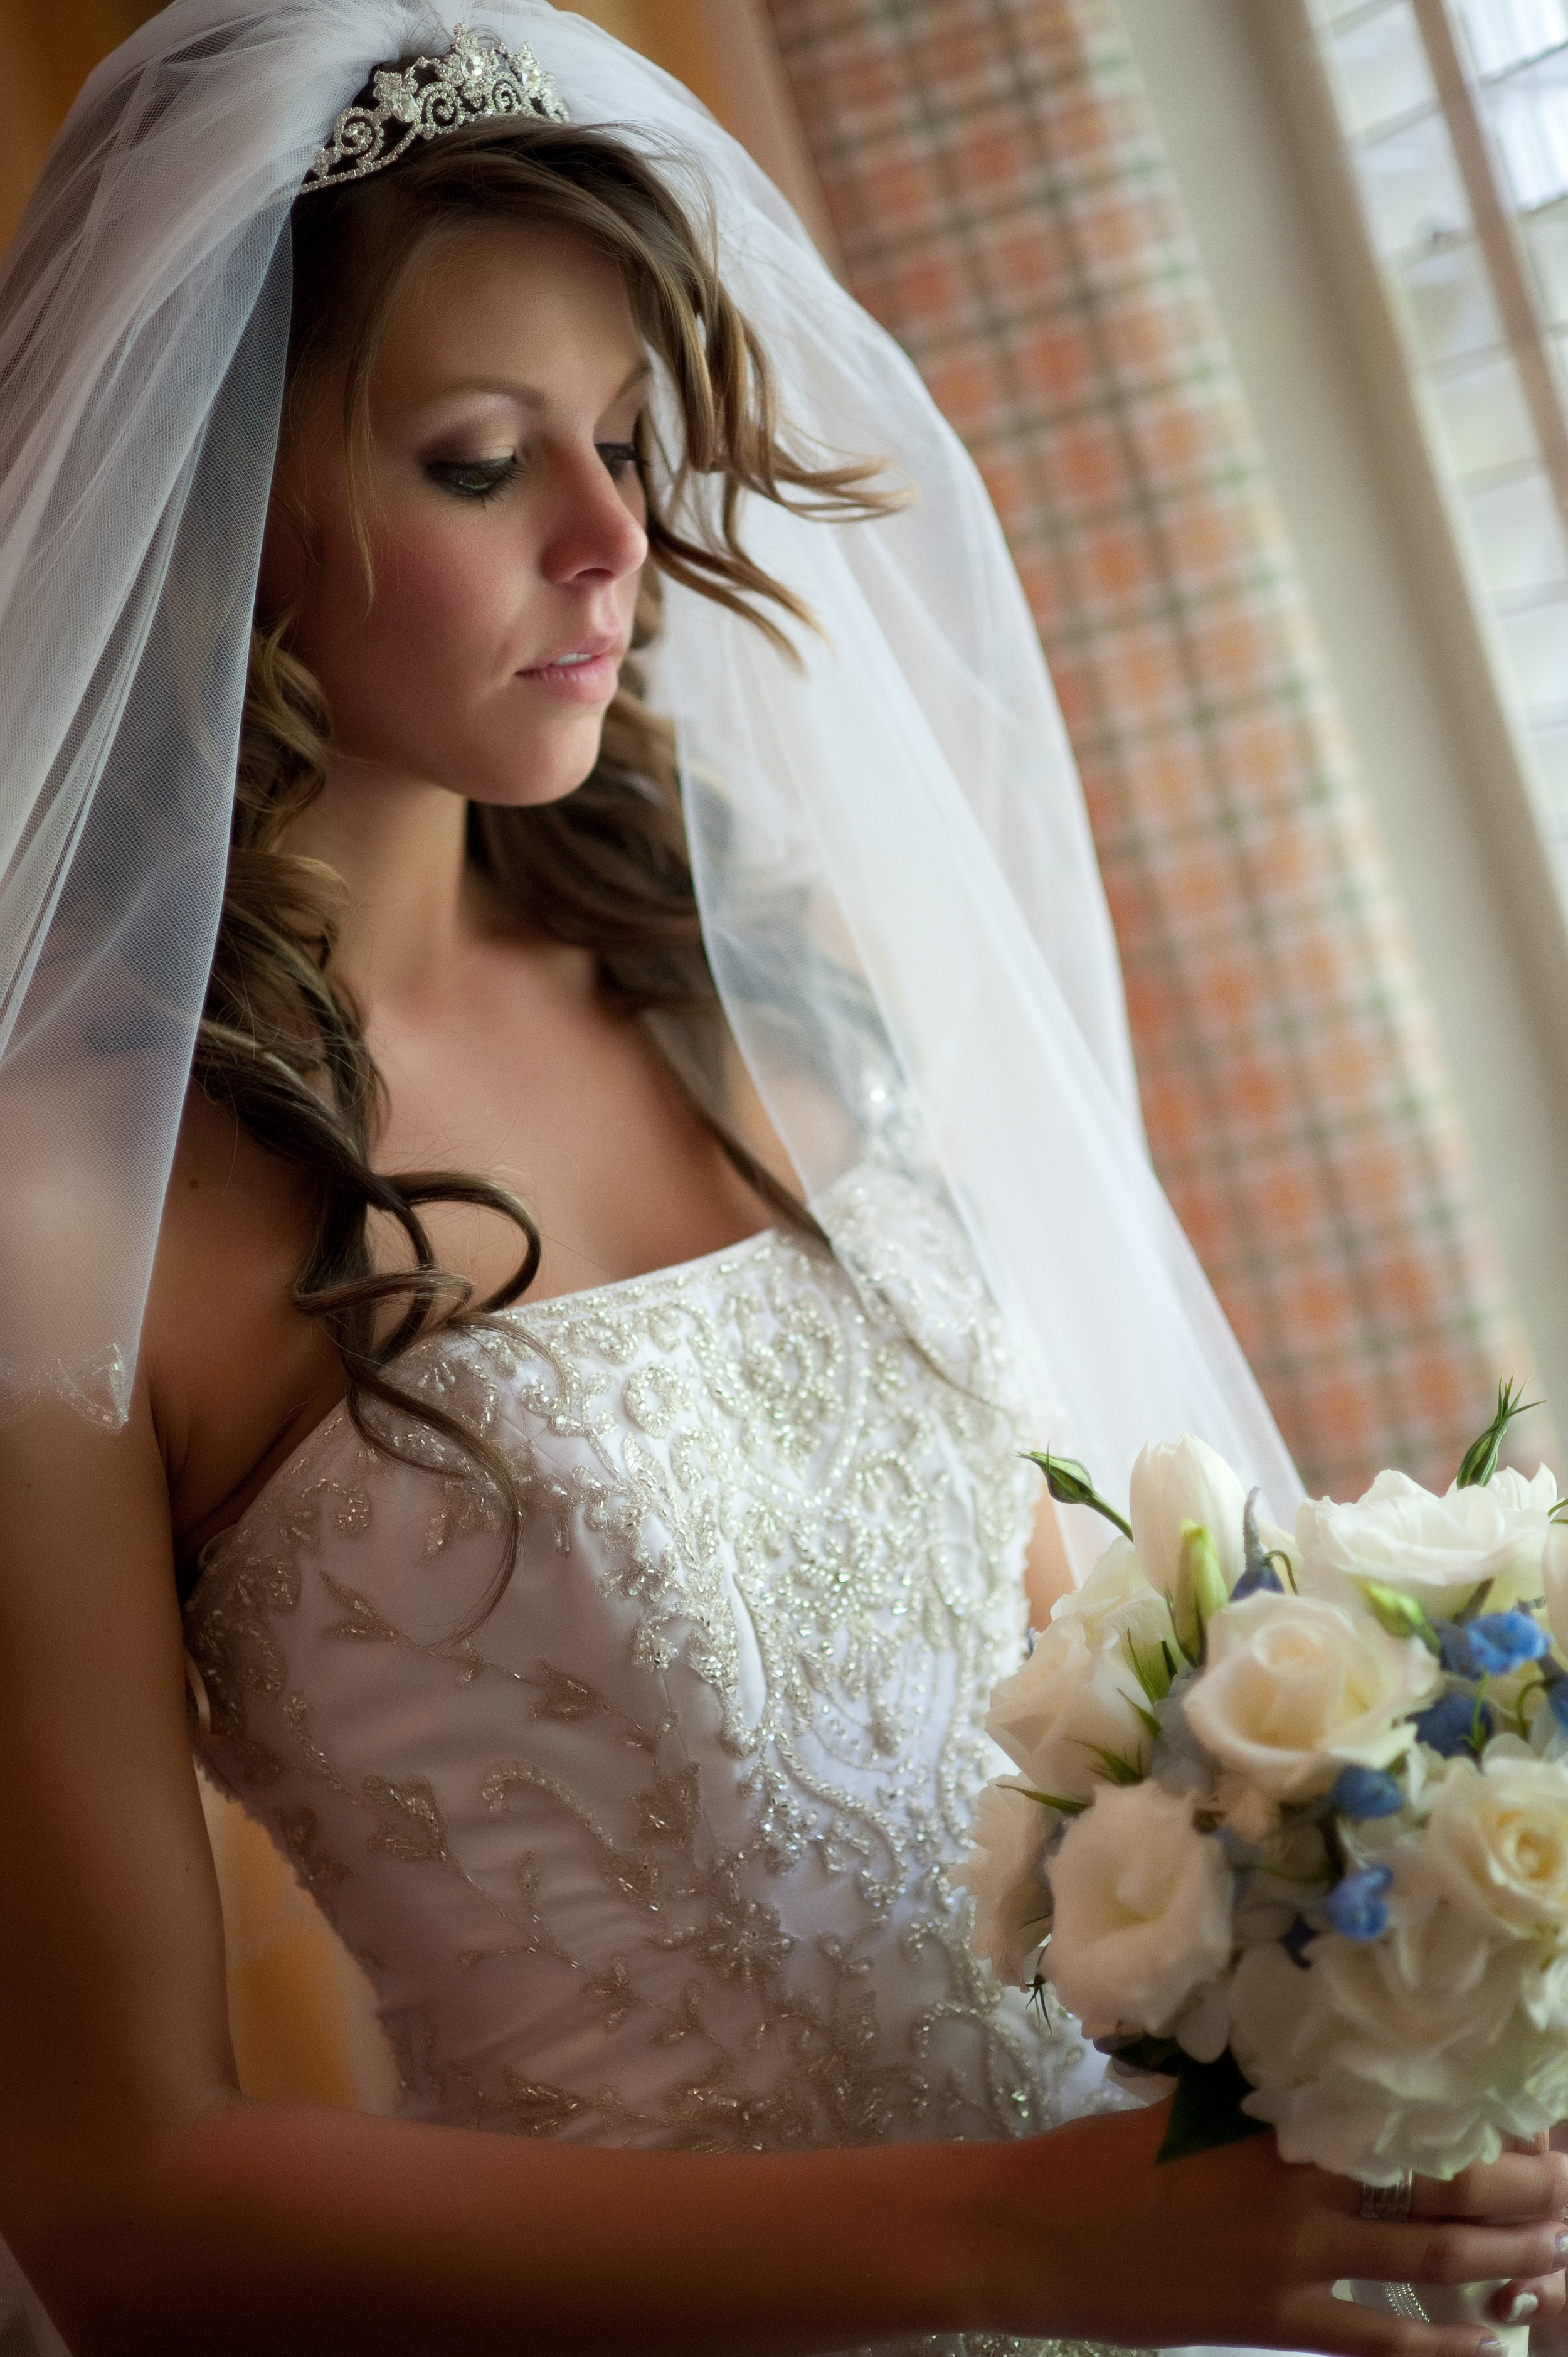 Bridal by the Window